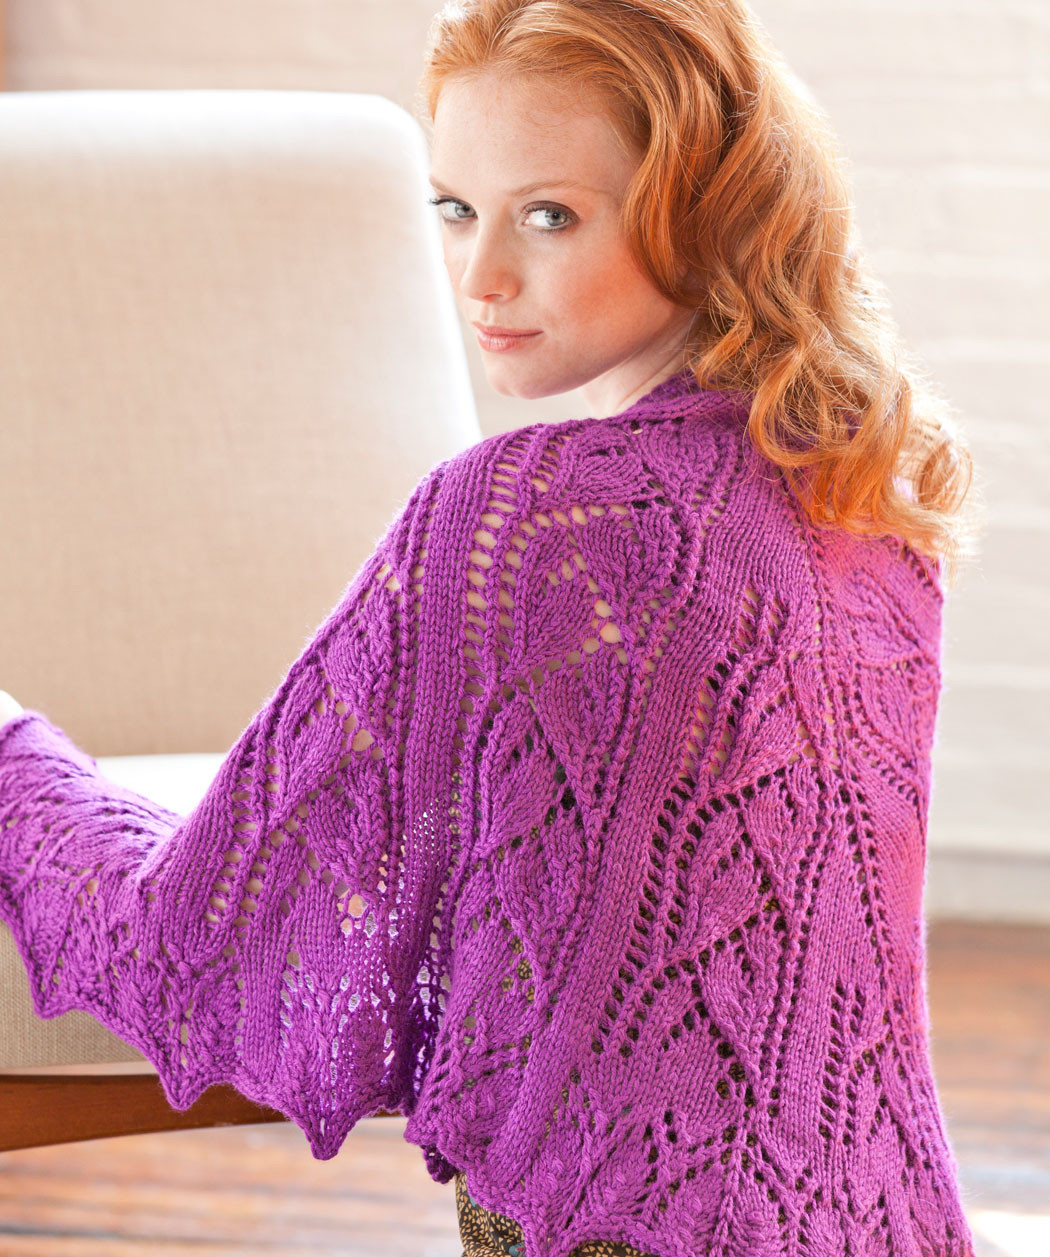 Best Of Free Knitted Shawl Patterns Free Shawl Patterns Of Beautiful Berroco andean Mist Squelette Shawl Free Knitting Pattern Free Shawl Patterns